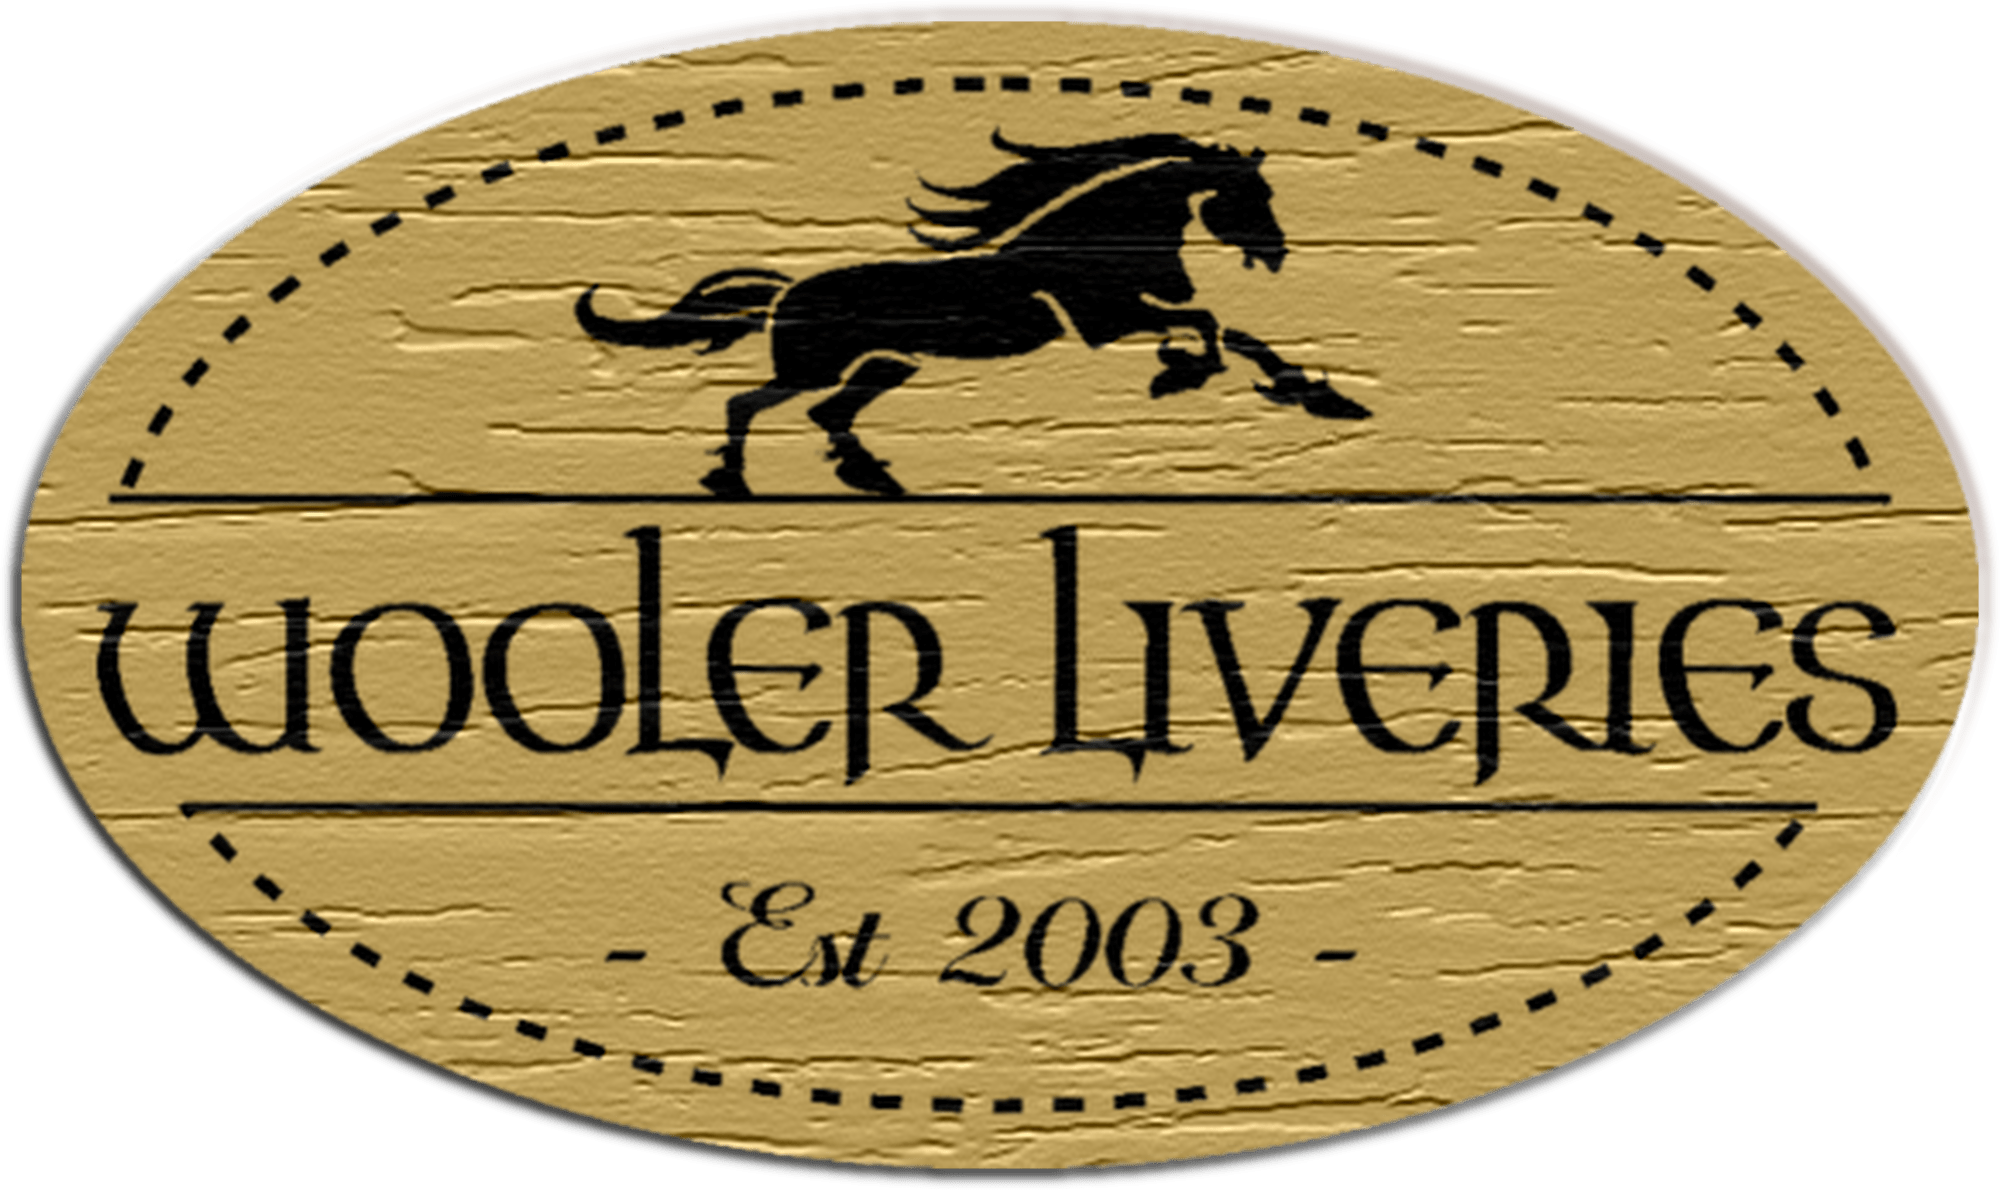 Wooler Liveries